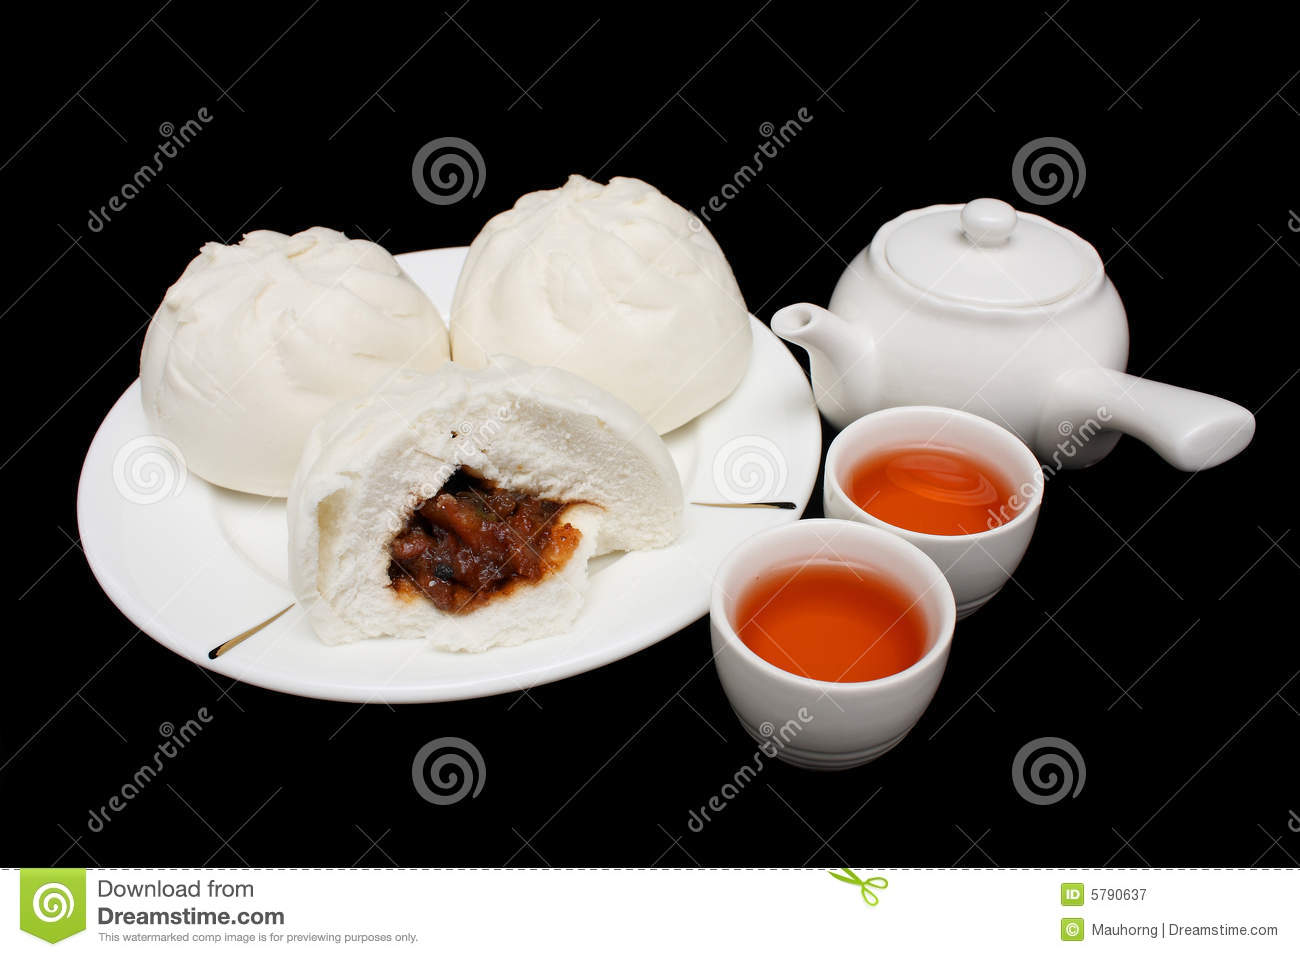 Chinese Barbecued Pork Bun with Teapot and Teacups